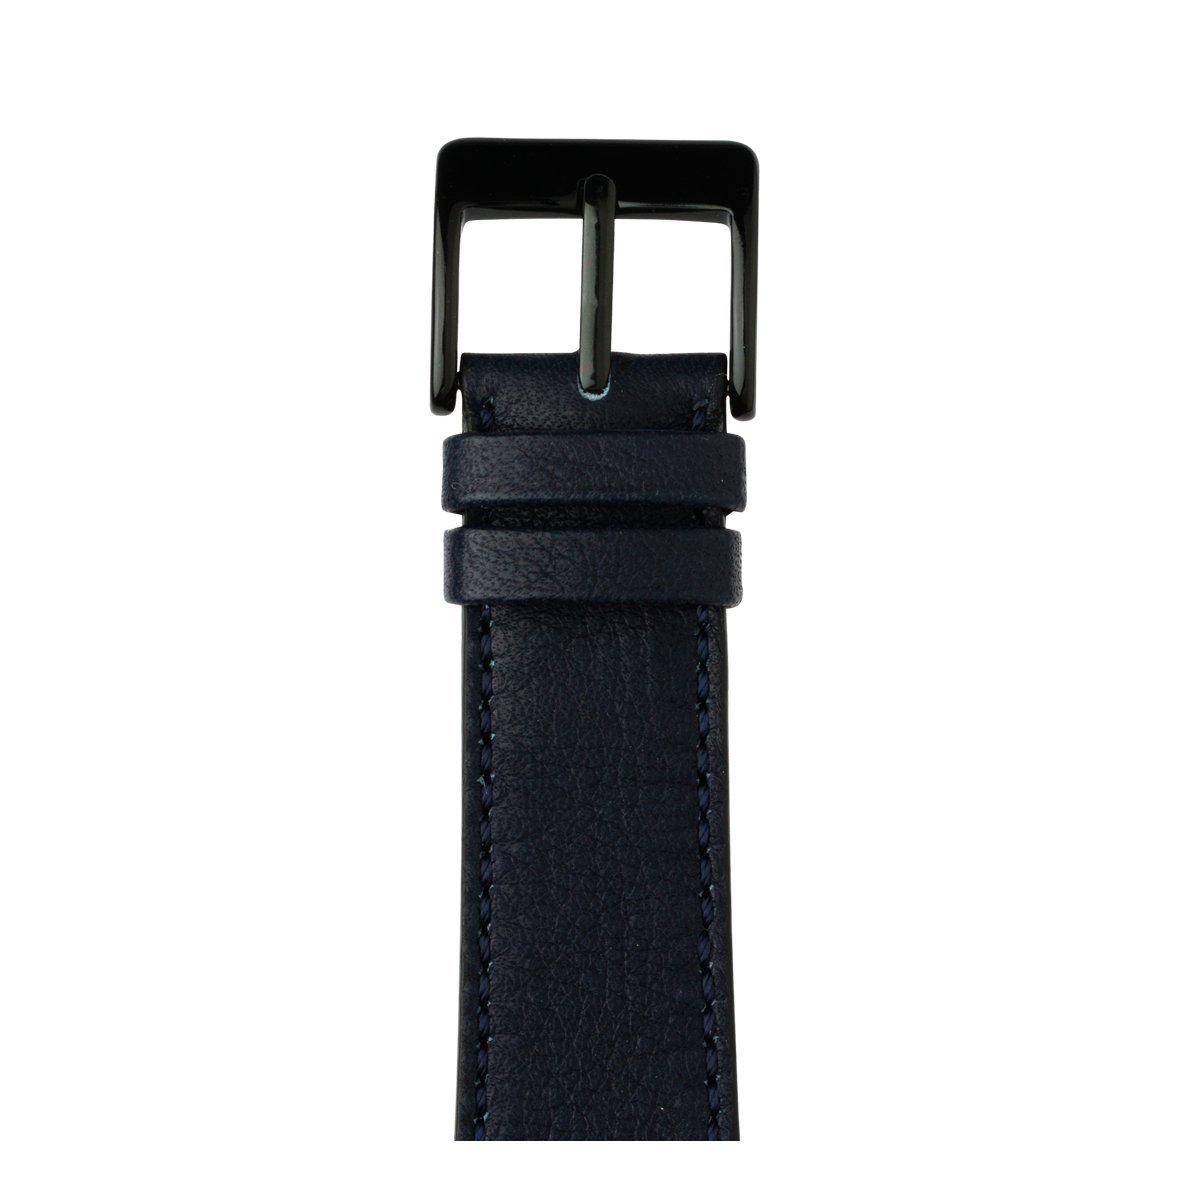 Roobaya | Premium Sauvage Leather Apple Watch Band in Dark Blue | Includes Adapters matching the Color of the Apple Watch, Case Color:Space Black Stainless Steel, Size:42 mm